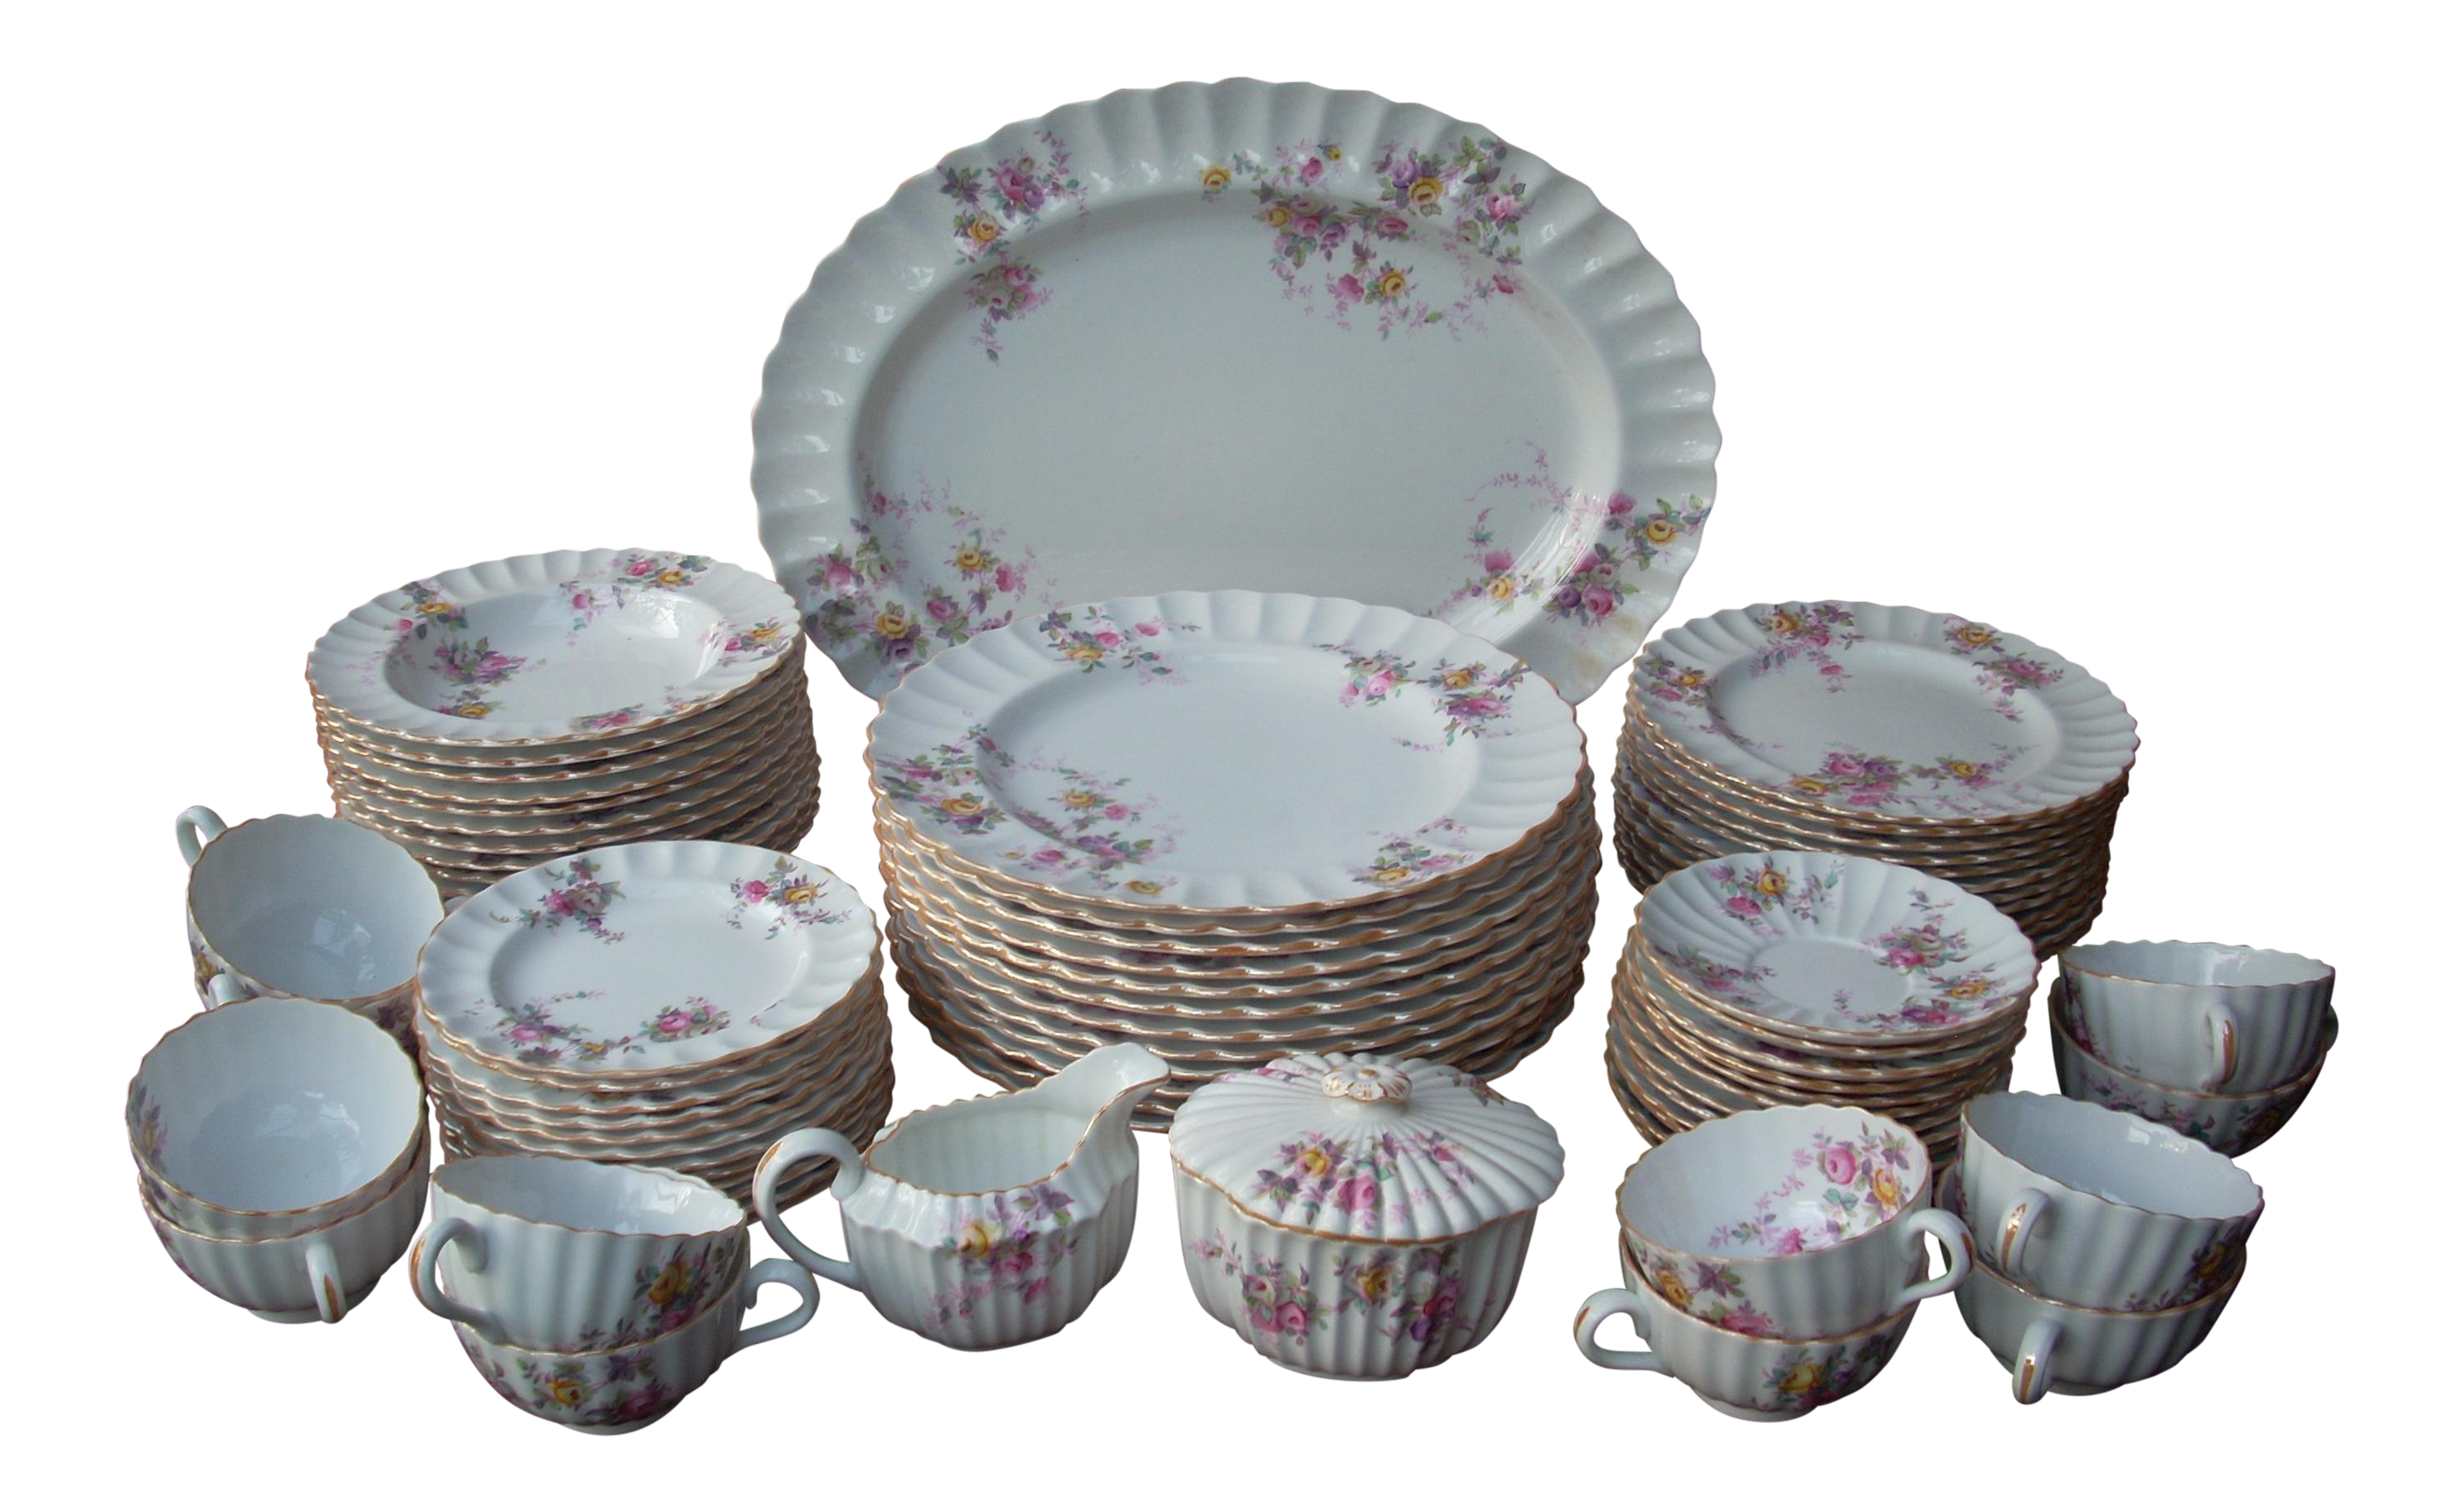 Spode Copeland Pattern China - Set of 75 - Image 1 of 10  sc 1 st  Chairish : spode dinnerware set - pezcame.com